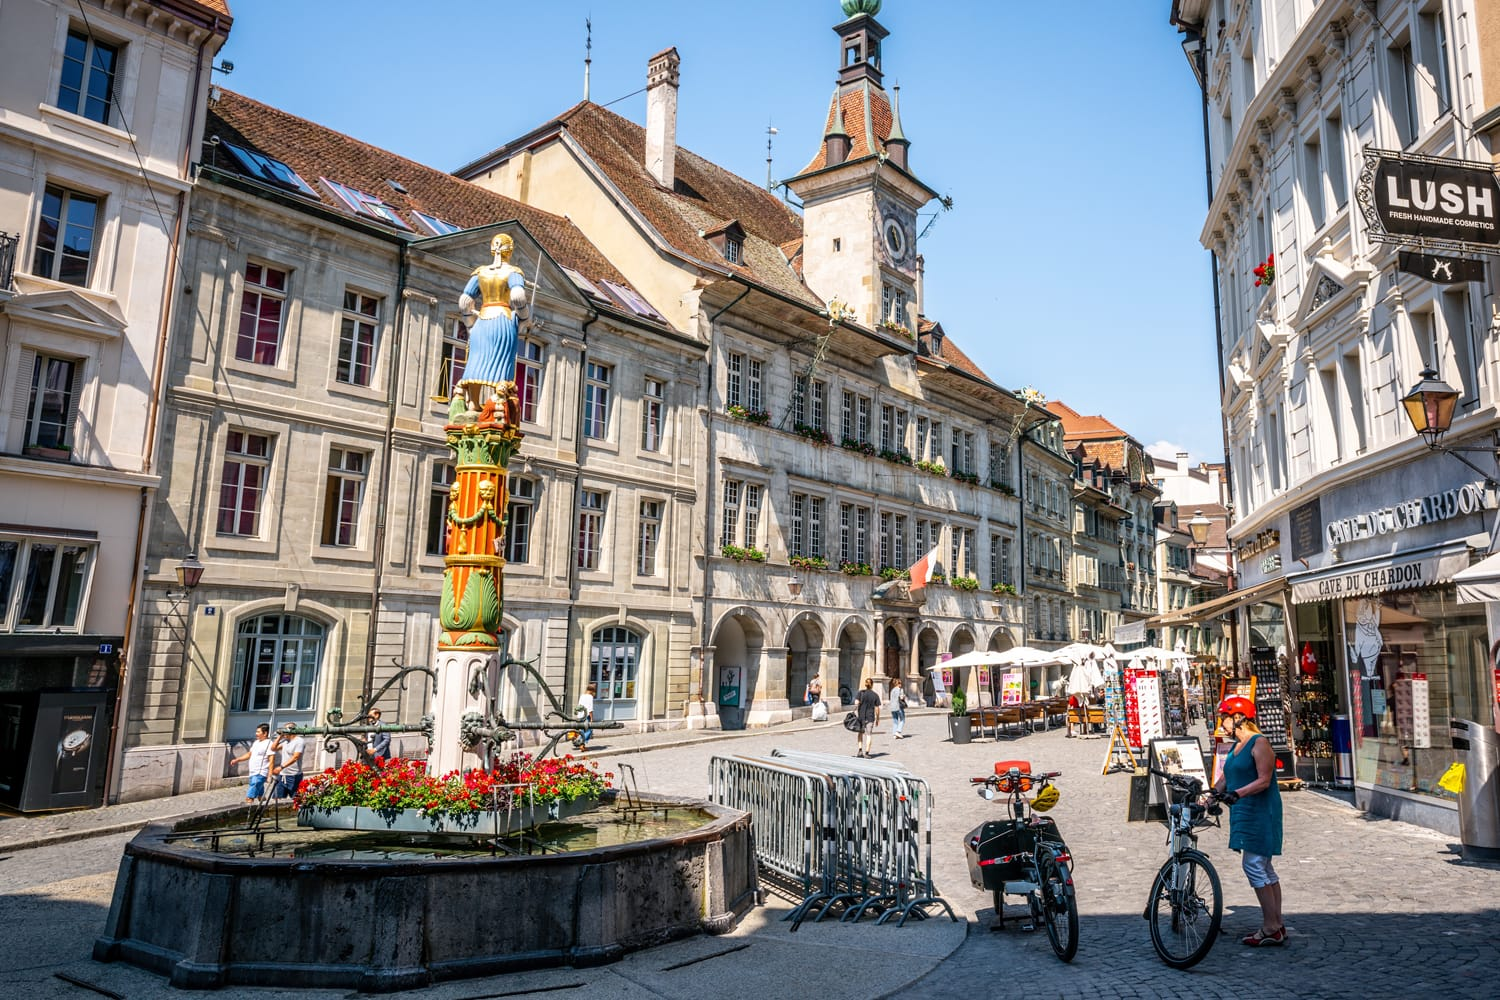 Place de la Palud or Palud square with the iconic Justice fountain and the Lausanne city hall in Lausanne Switzerland